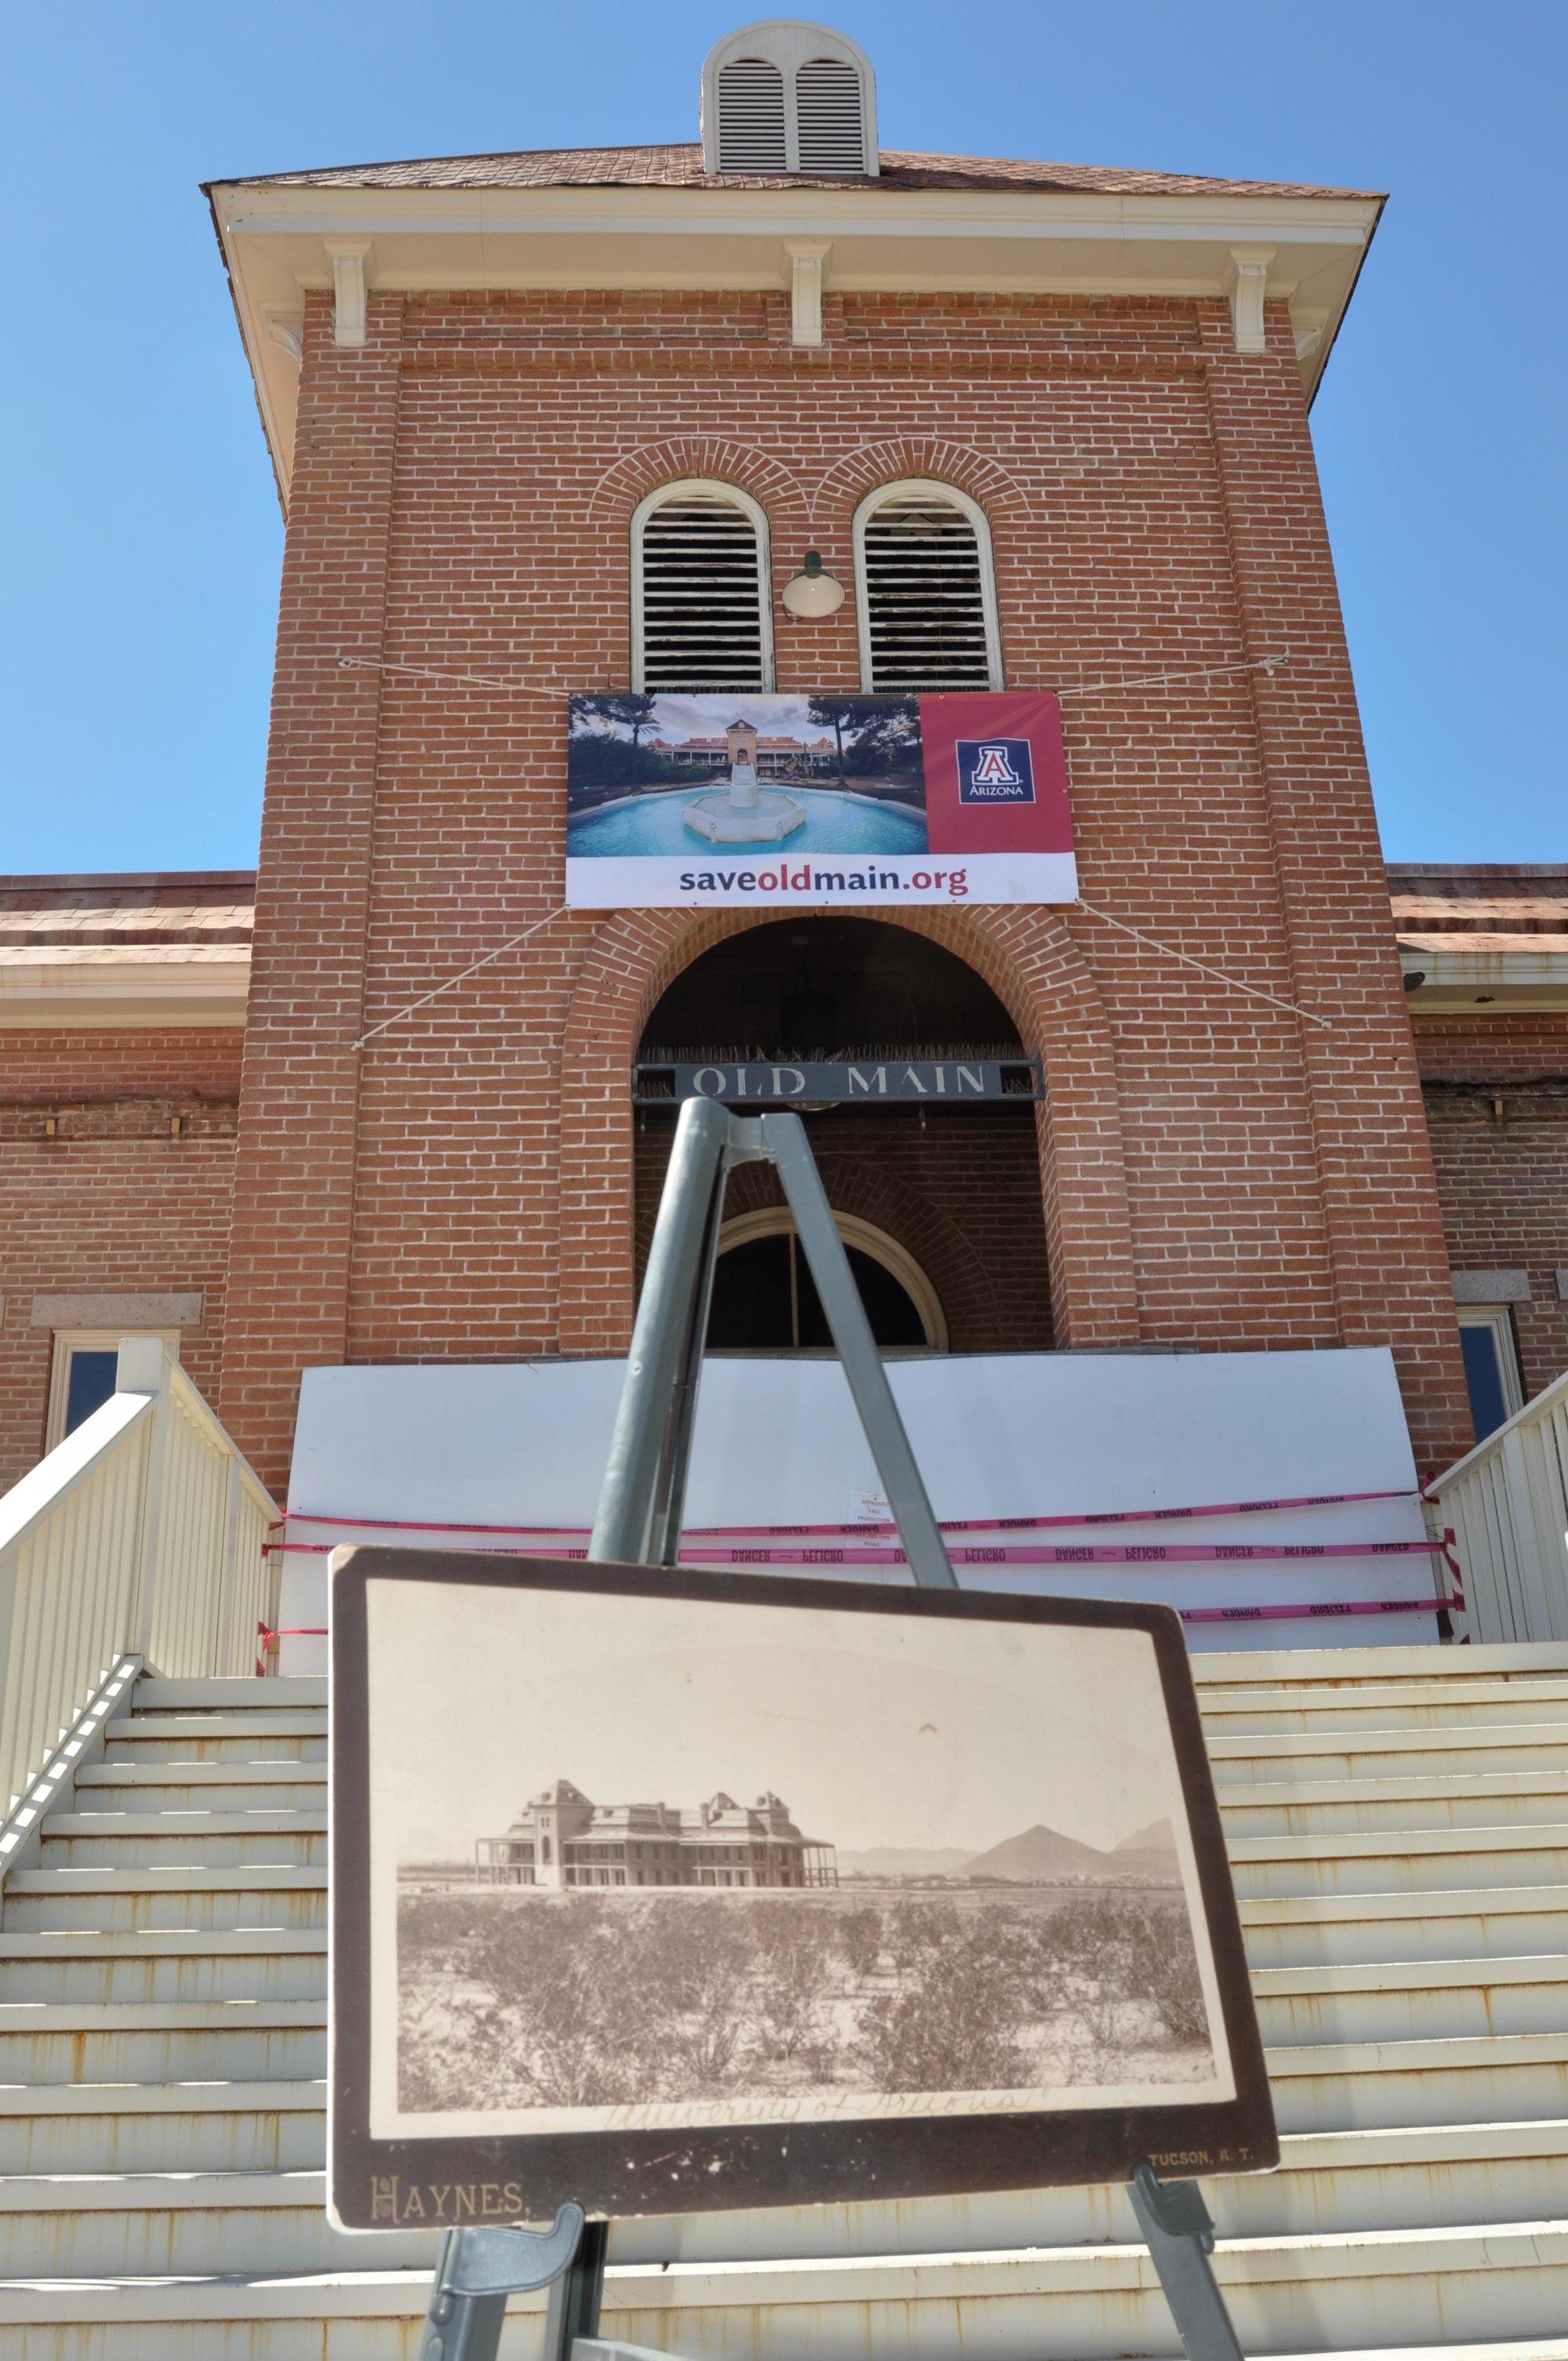 Renovations to Old Main will ensure that the building continues to function sustainably for years to come.